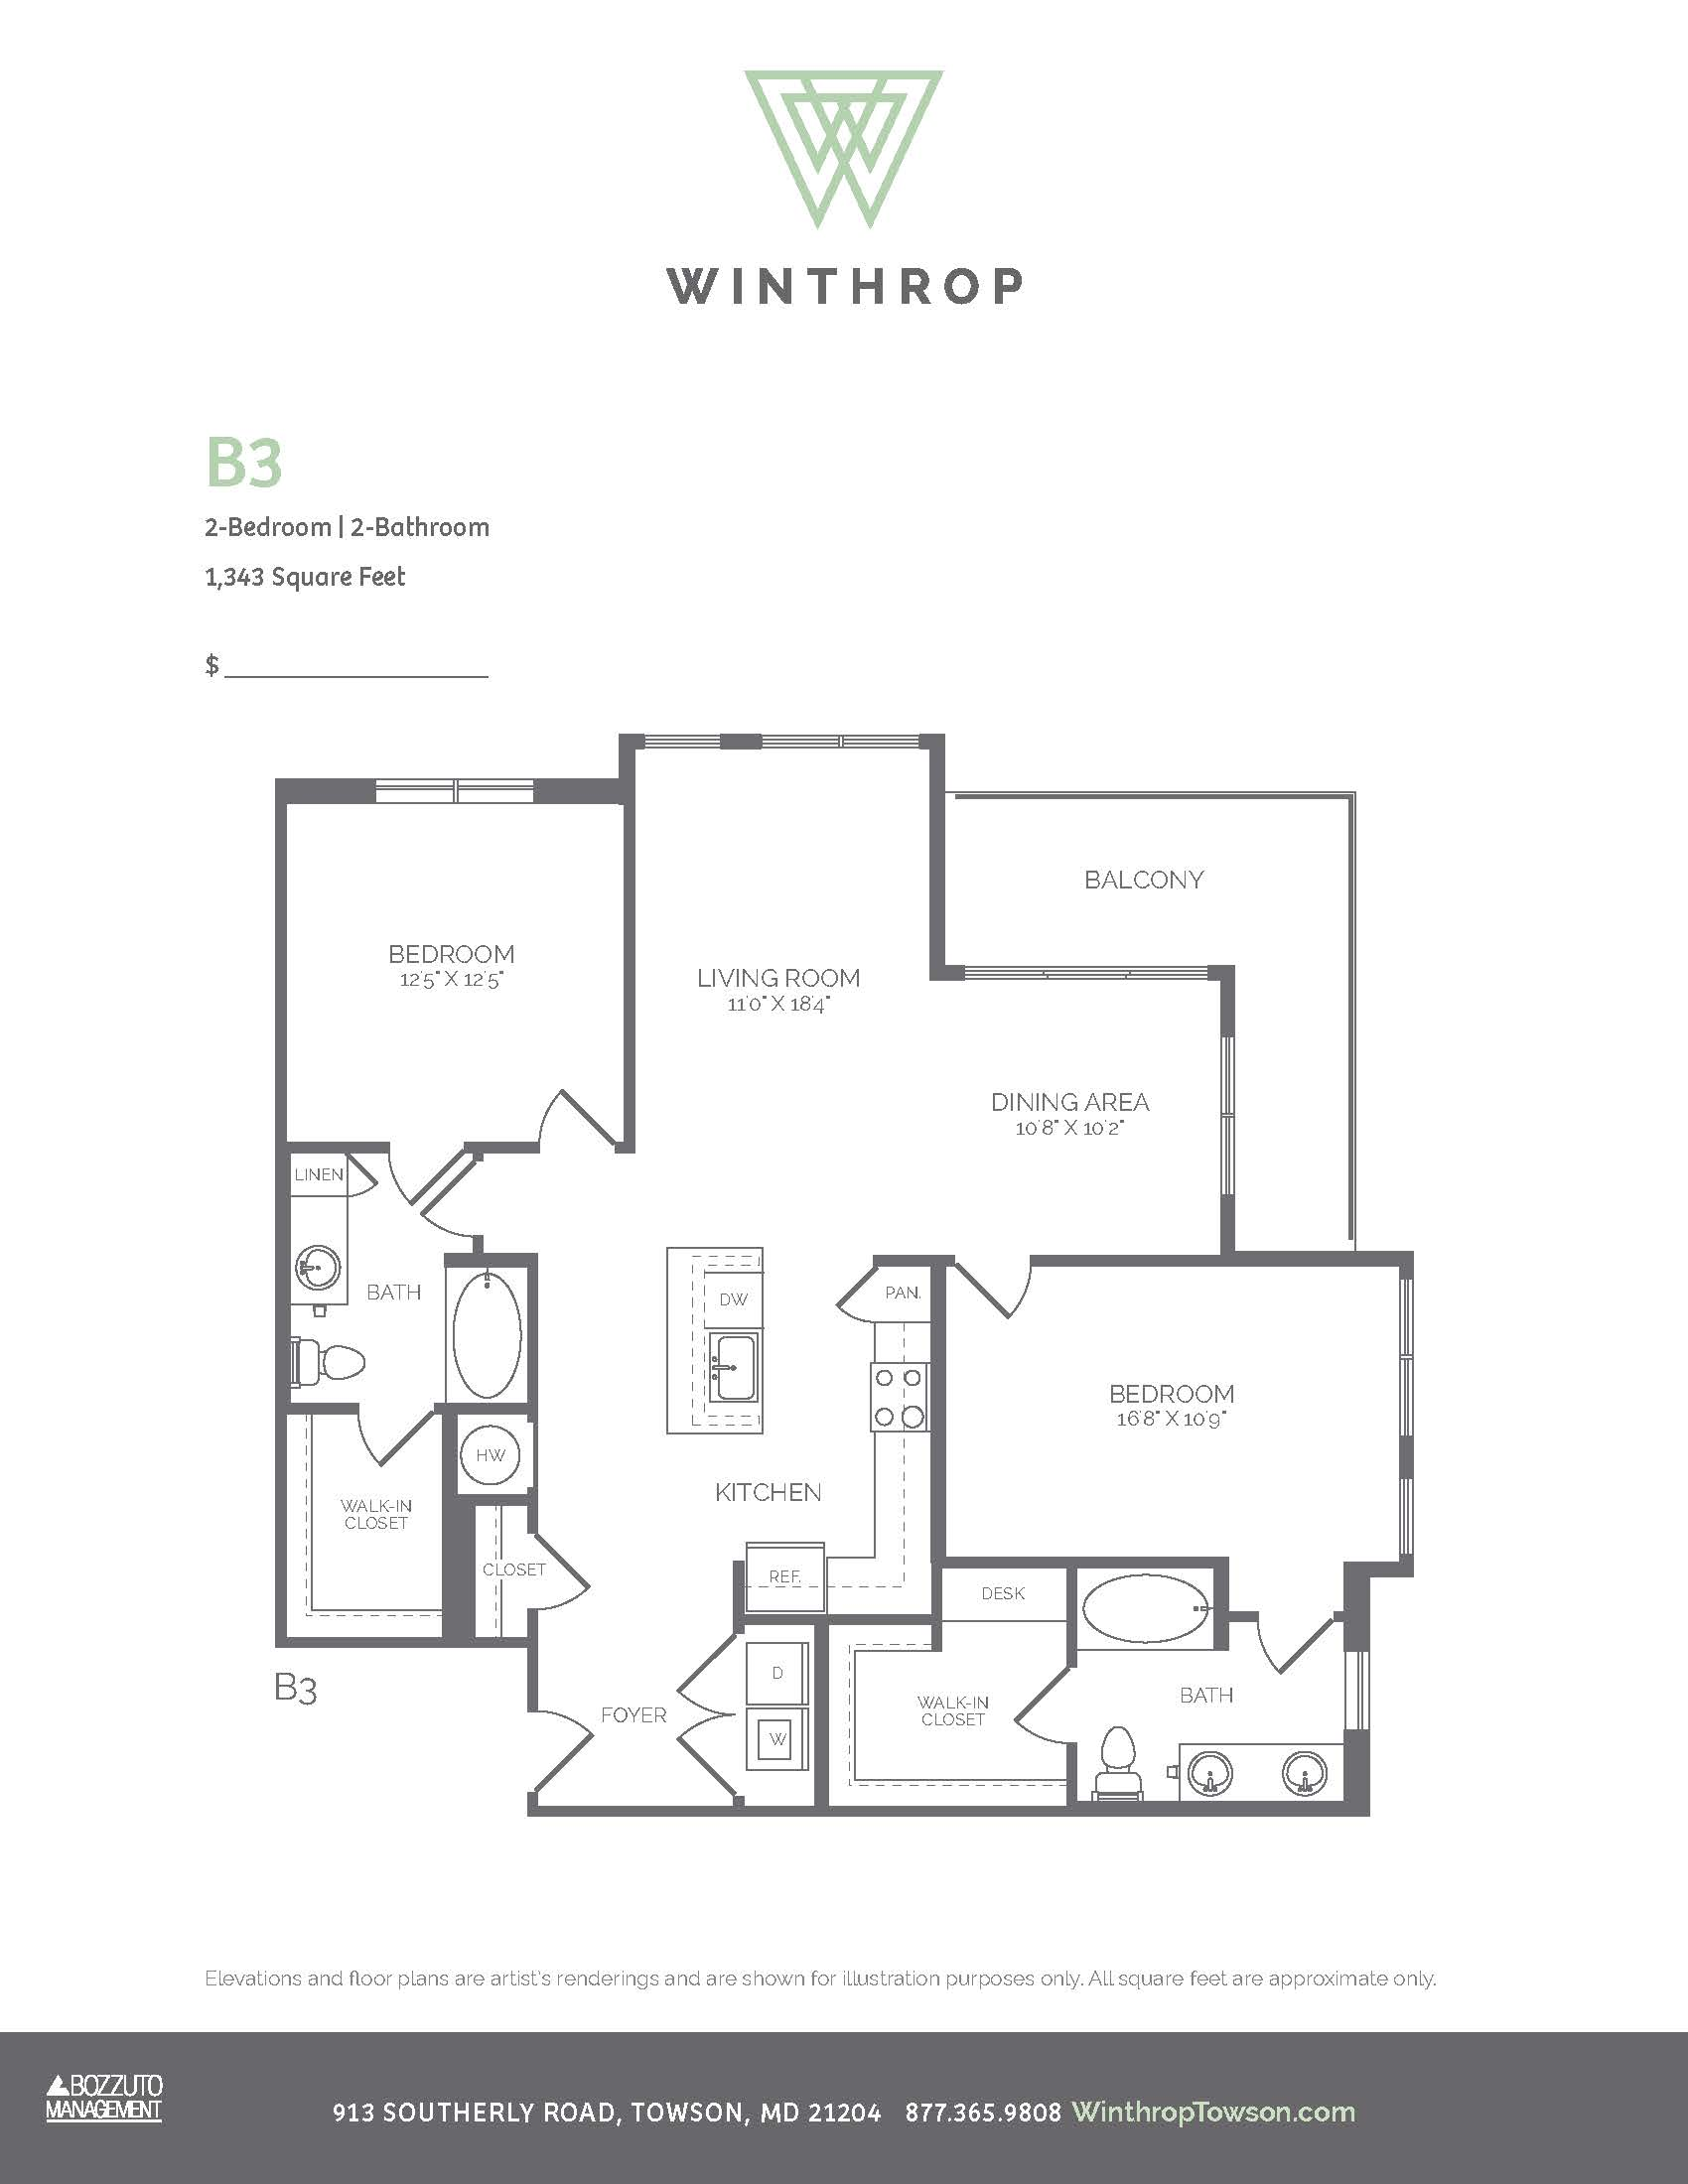 Sneak Peek Winthrop Floor Plans Pricing Availability Displayport Schematic 11052 02 Wrp Bro Fp Inserts M 2 13